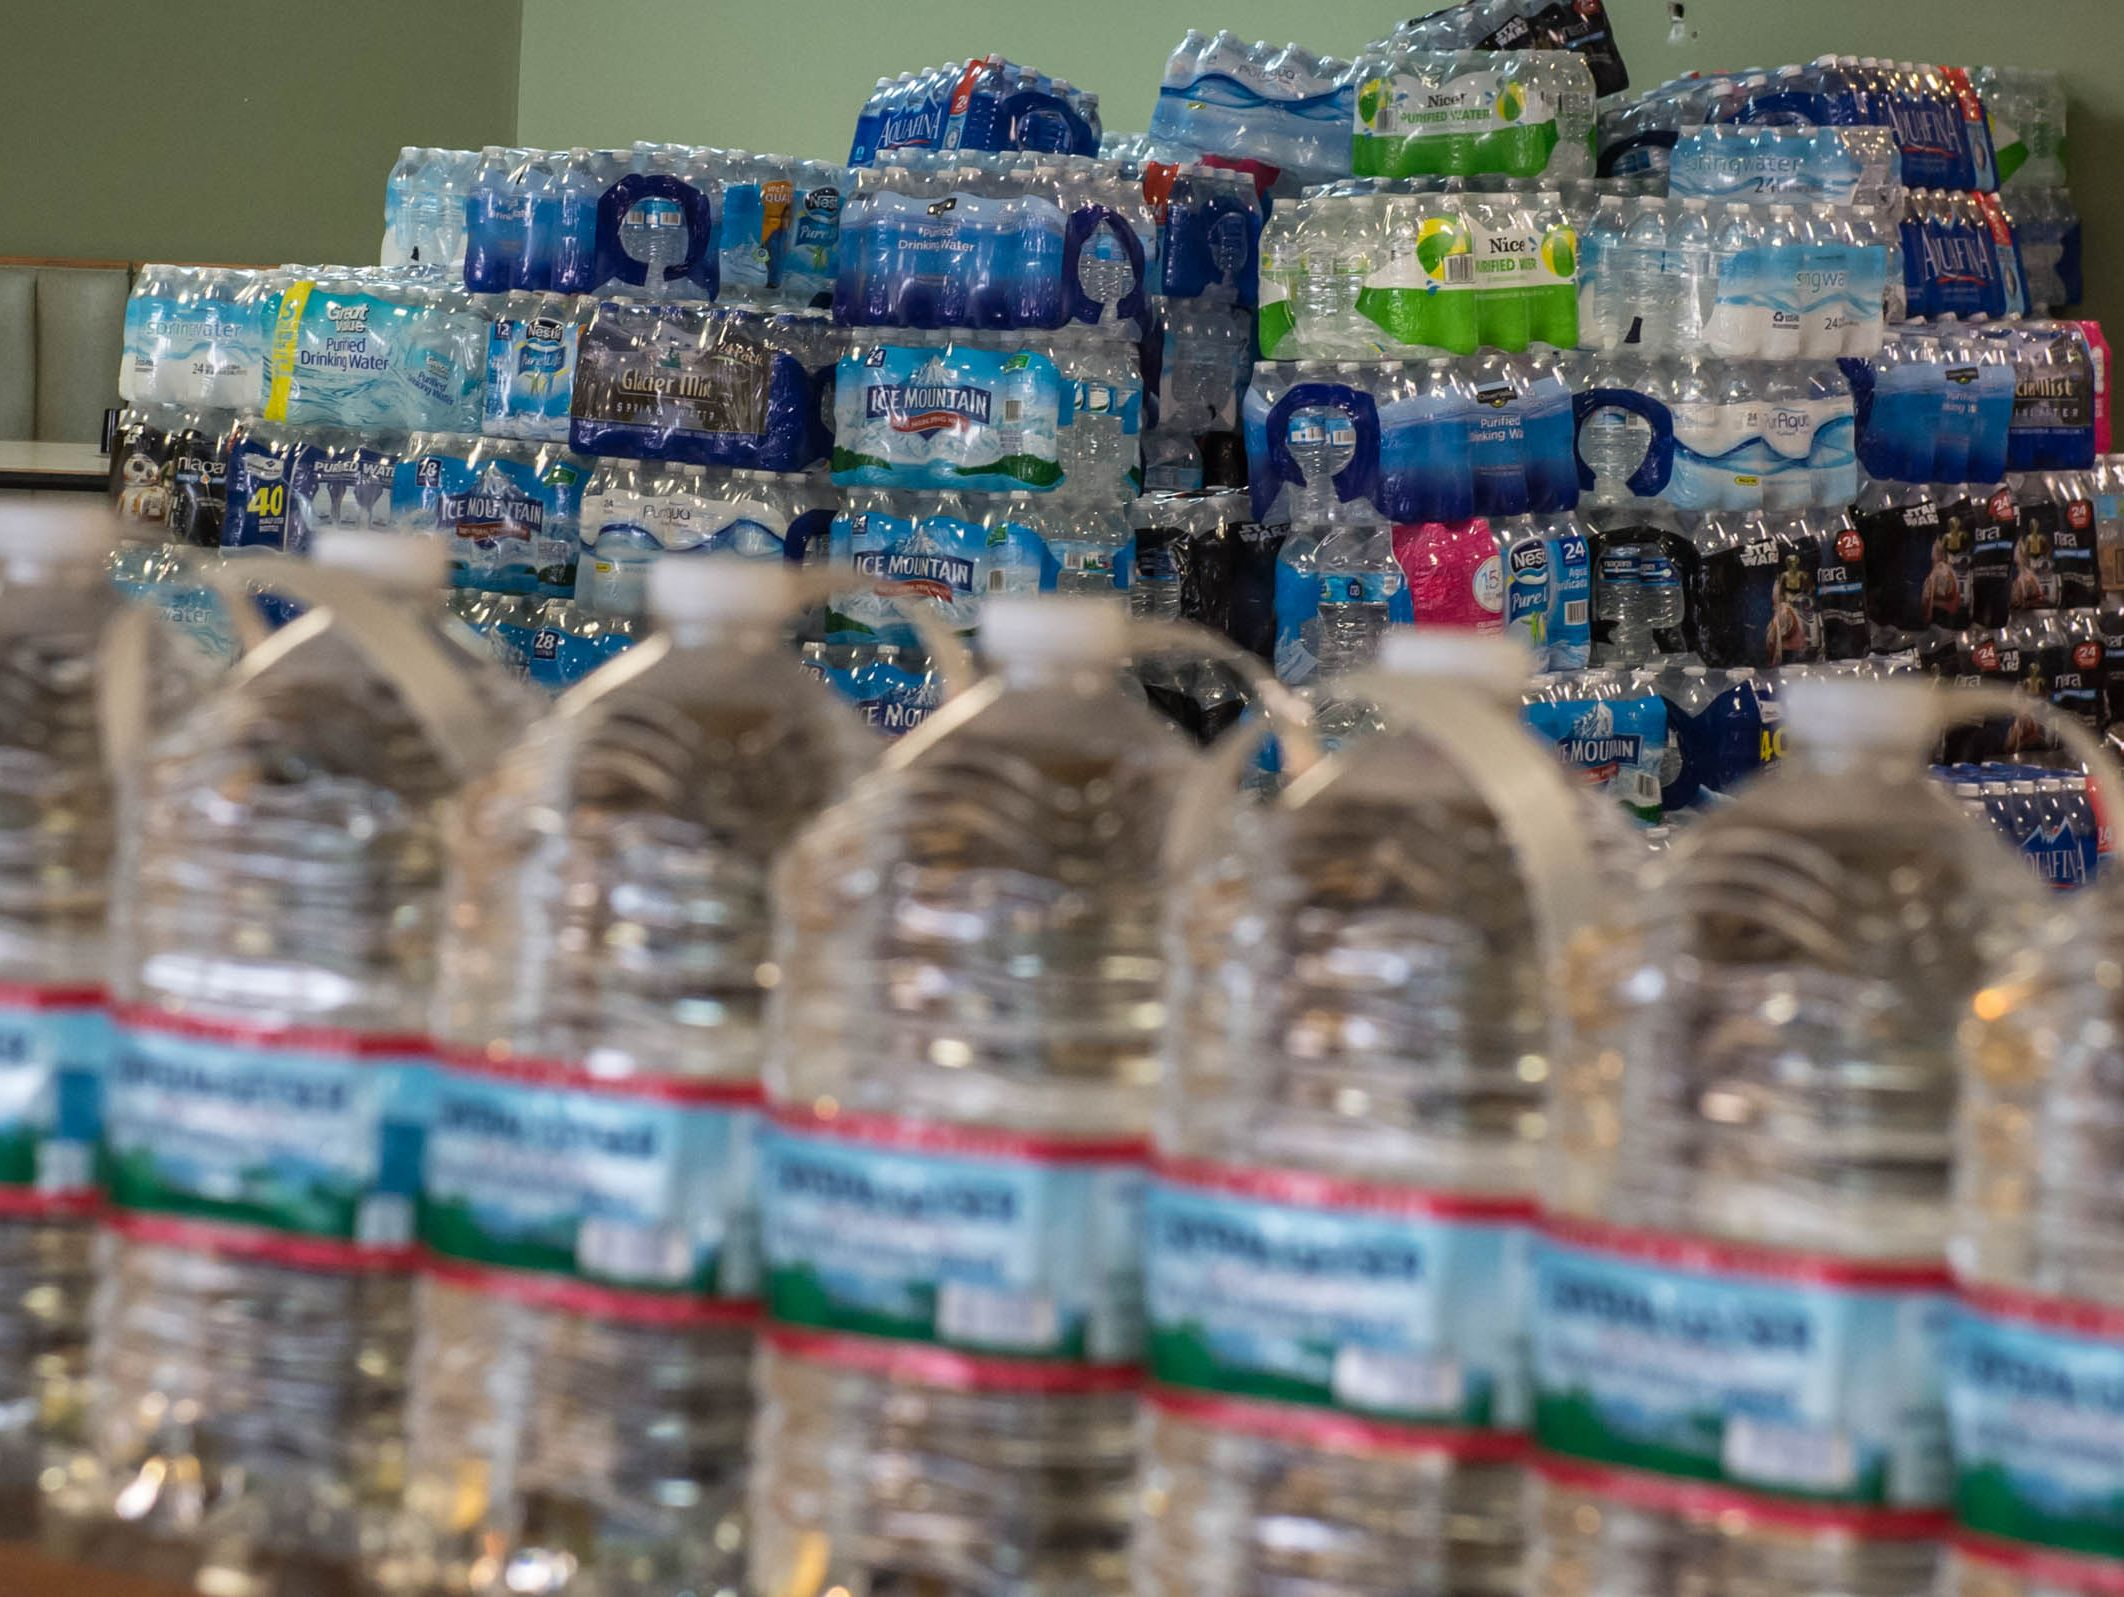 Bottled water collection at B.C.P.D. Pizza on Tuesday.